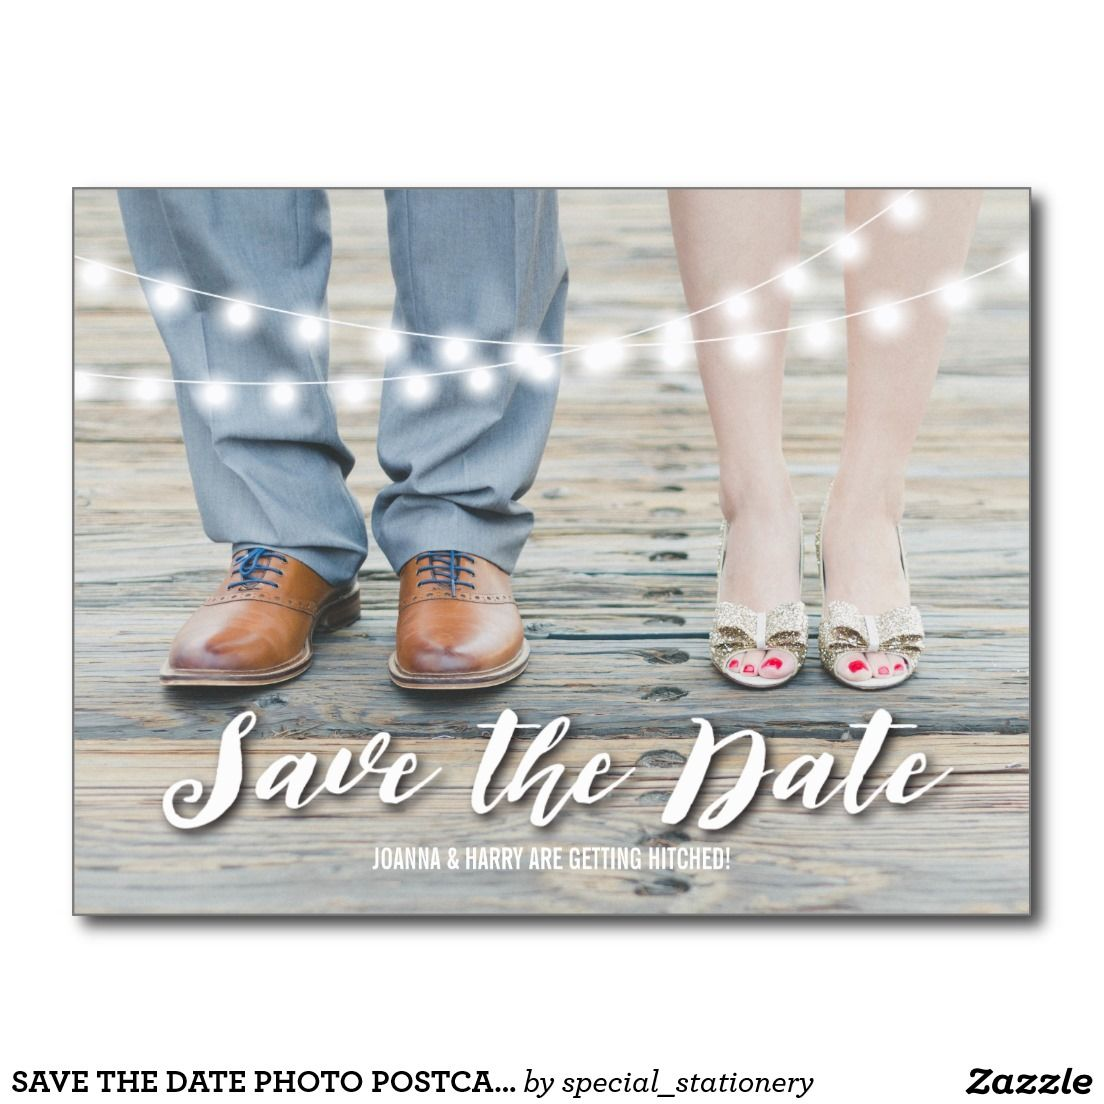 SAVE THE DATE PHOTO POSTCARD | ELEGANT MARRIAGE #SAVETHEDATE #PHOTOCARD #WHIMSICAL #WEDDING #MARRIAGEINVITATION #RUSTIC #COUNTRY #MODERN #ELEGANT